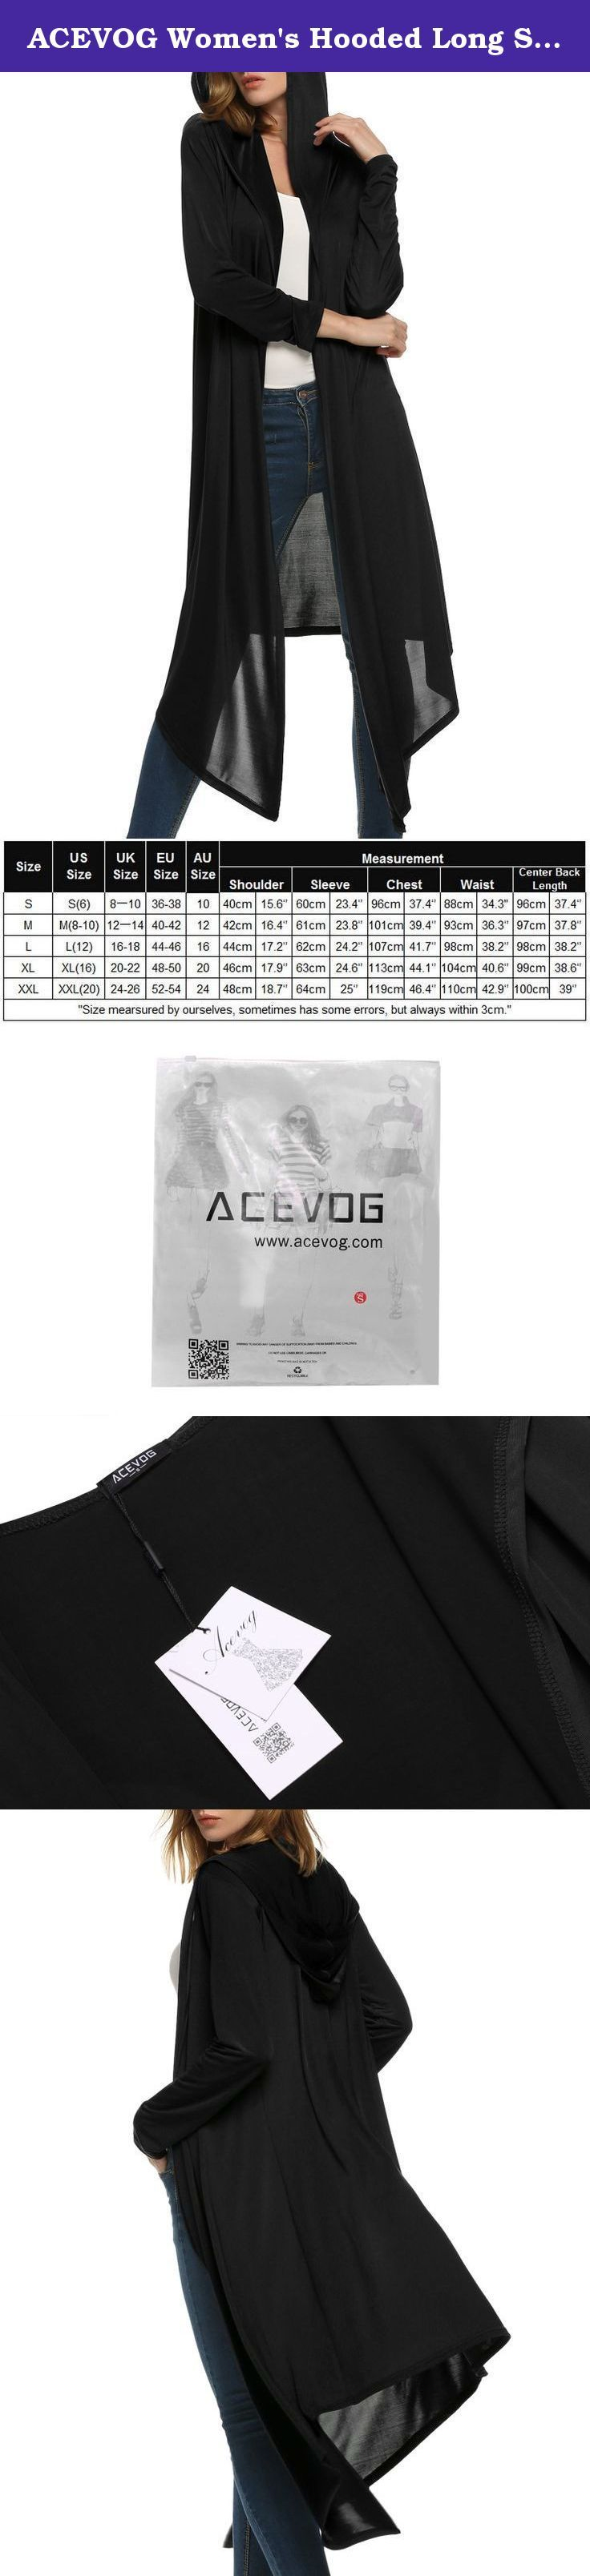 "ACEVOG Women's Hooded Long Sleeve lapel Solid Knee length Long Cape Cardigan Outerwear. Brand: ACEVOG Material: Polyester 5 Colors: Wine Red, Pink, Navy Blue, Gray, Black 5 Sizes available: US S-----Shoulder 40cm/15.6""------Sleeve 60cm/23.4""------Chest 96cm/37.4""-------Waist 88cm/34.3""------Center Back Length 96cm/37.4"" US M-----Shoulder 42cm/16.4""------Sleeve 61cm/23.8""------Chest 101cm/39.4""------Waist 93cm/36.3""------Center Back Length 97cm/37.8"" US L-----Shoulder…"